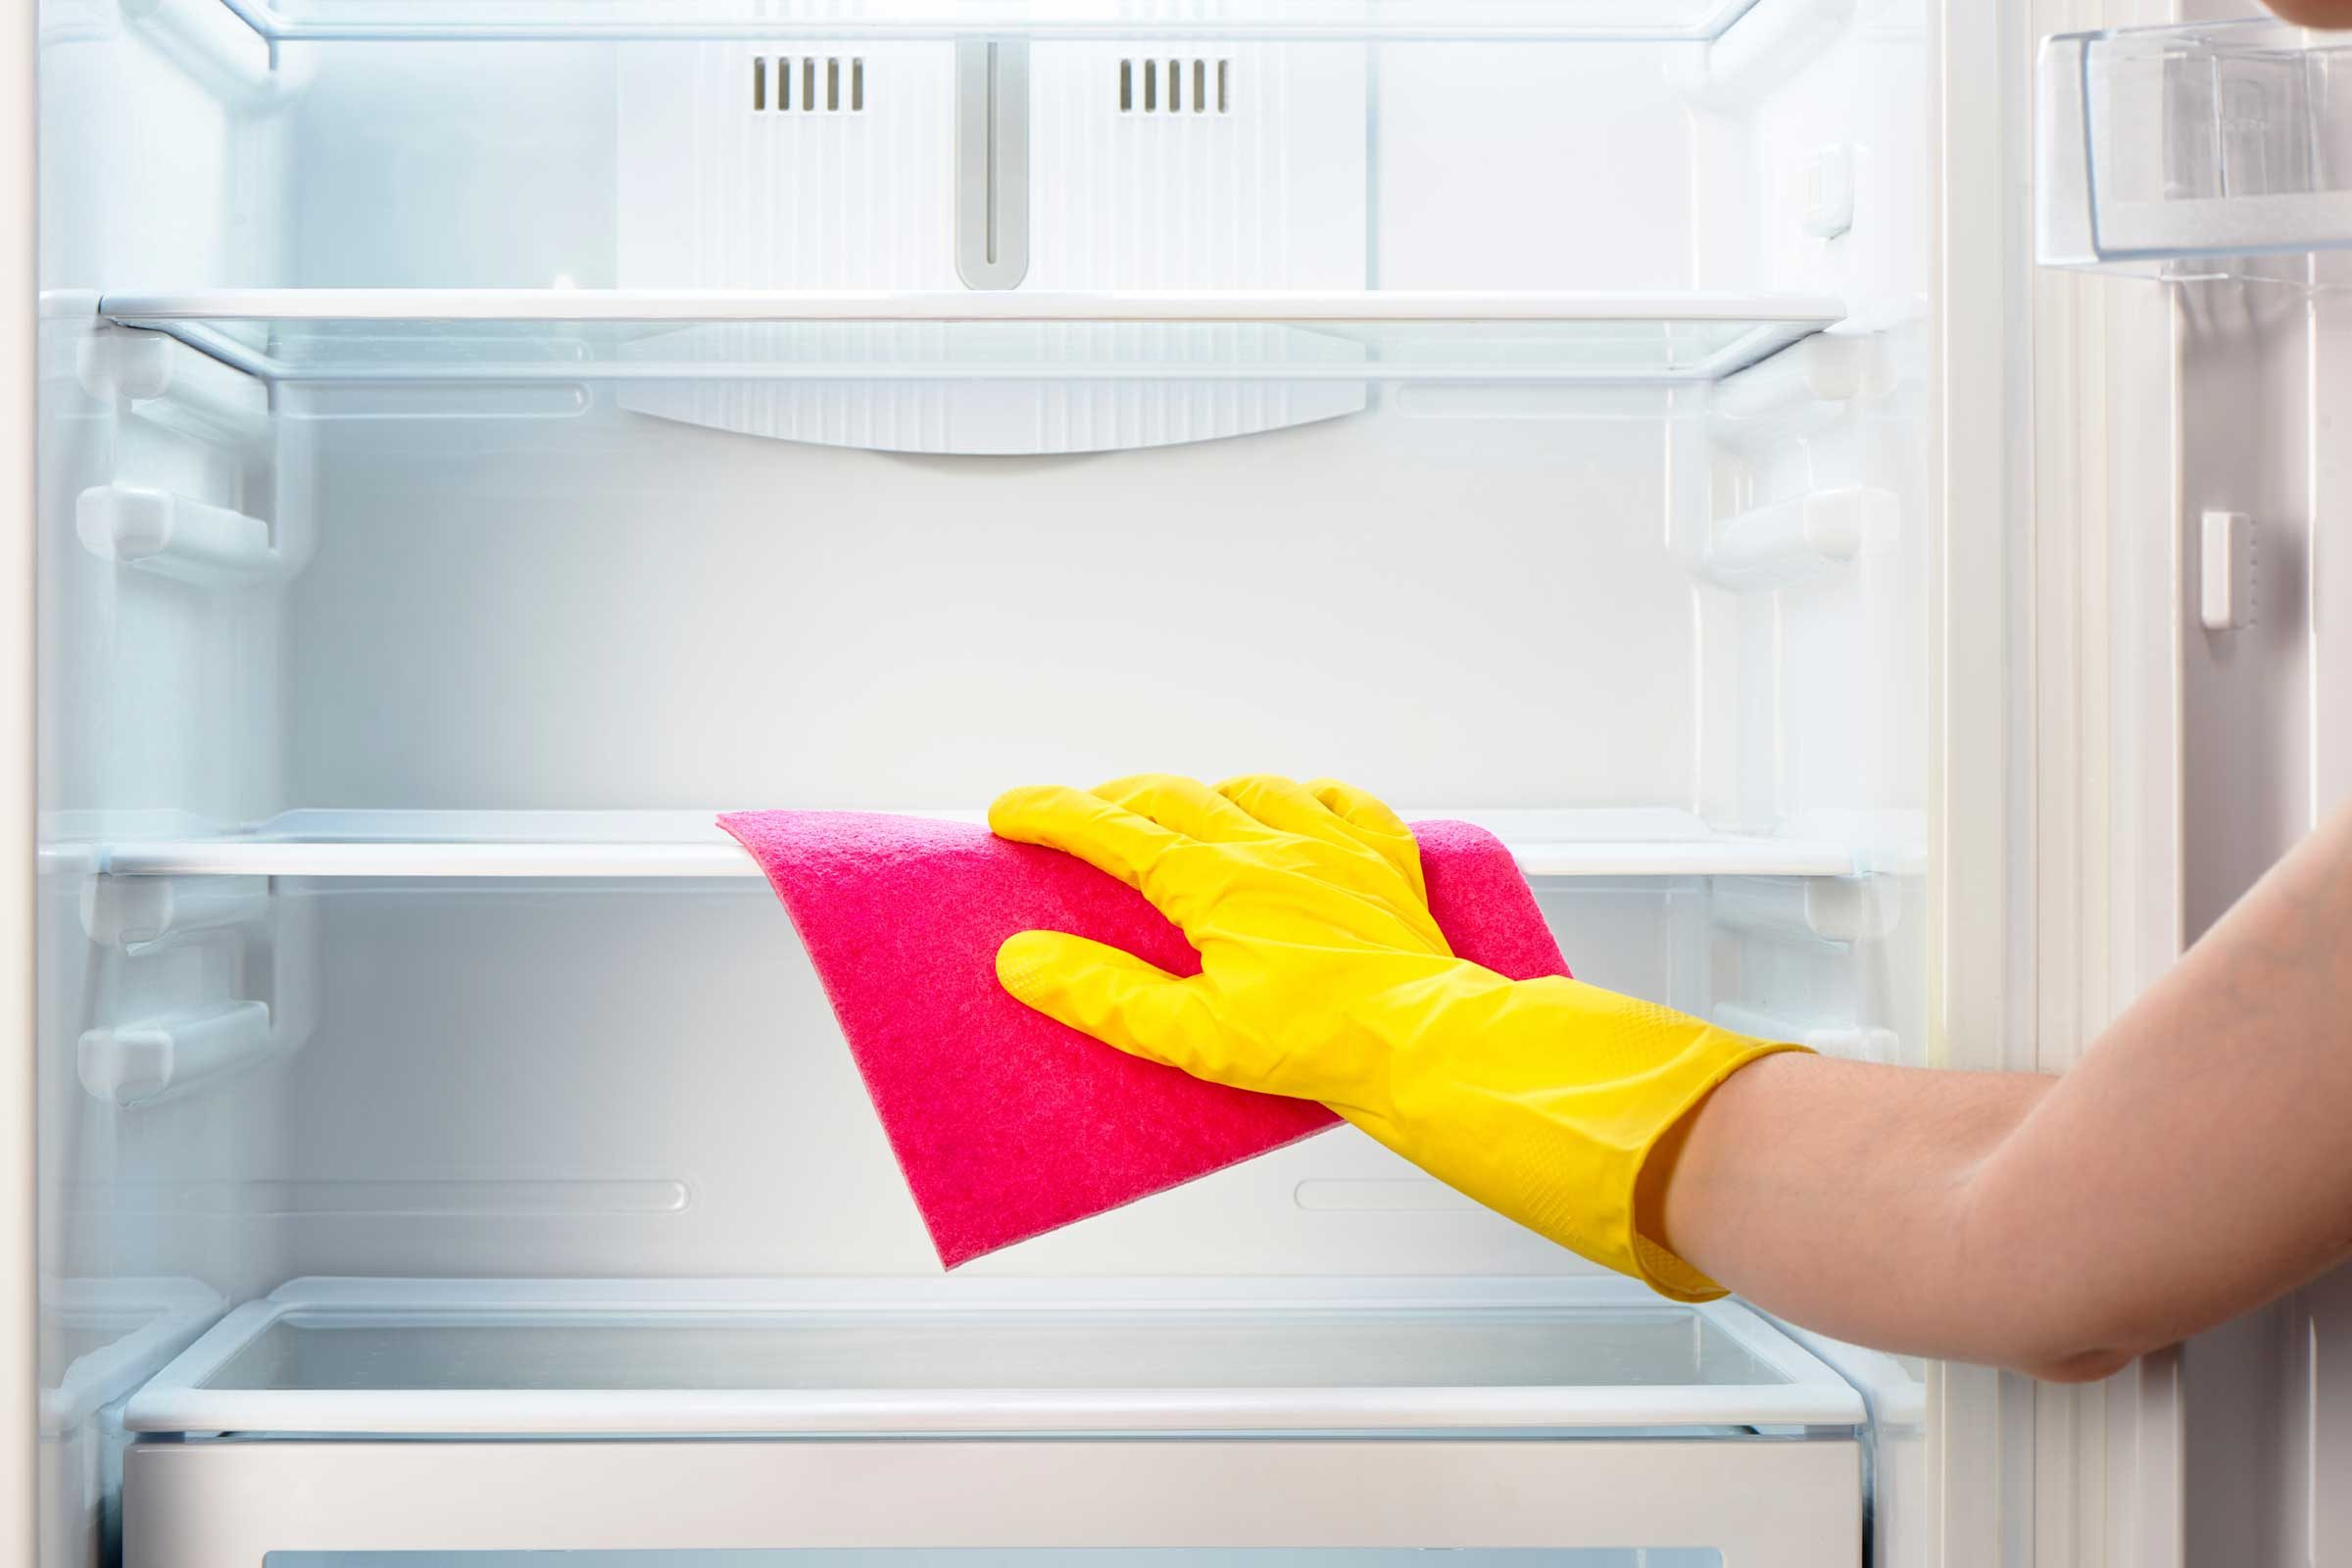 Clean the tray under the fridge with a bleach solution and sprinkle with salt